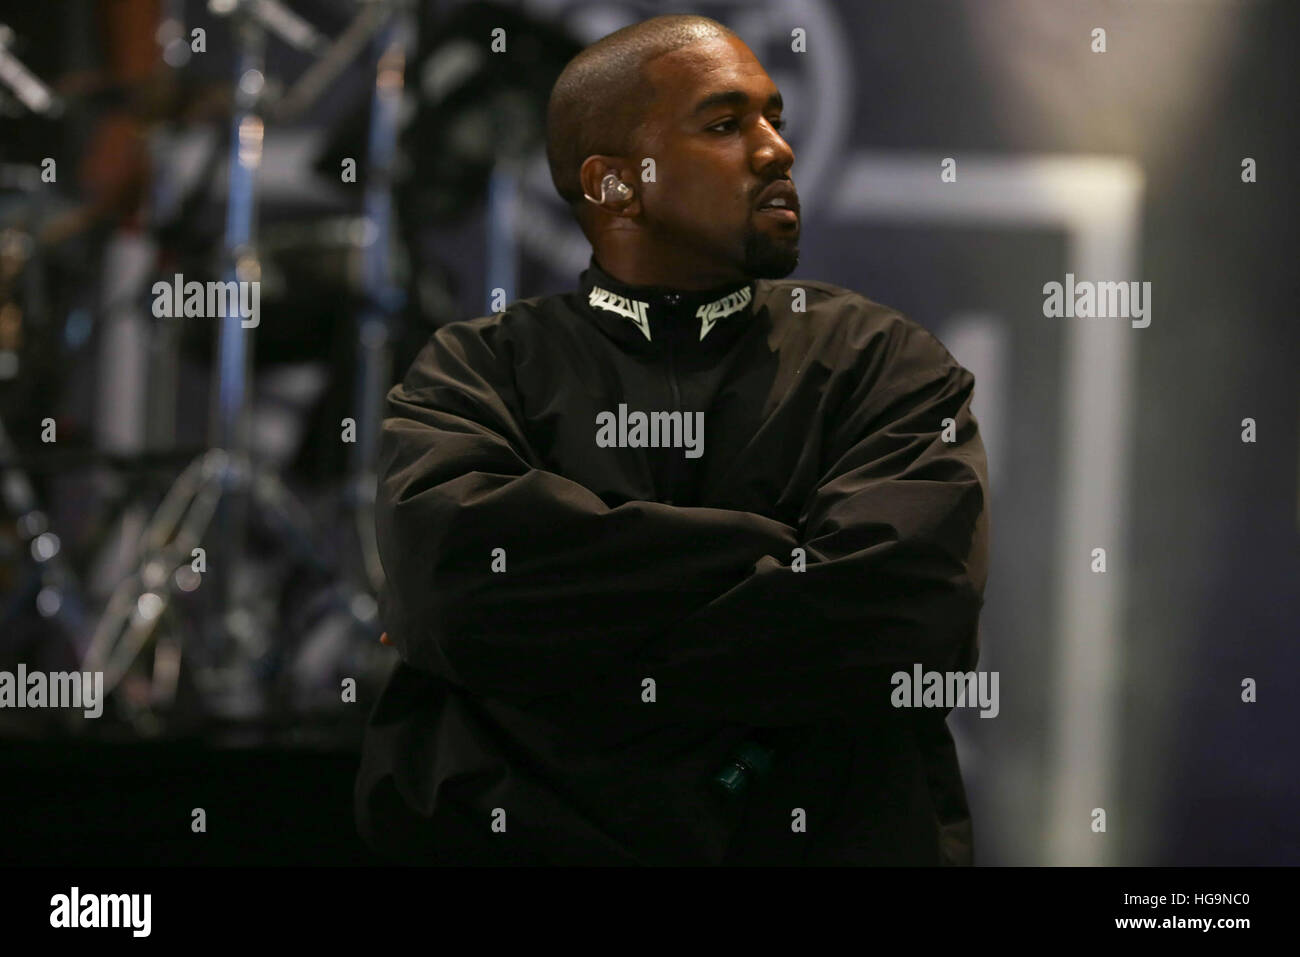 Kanye West and G.O.O.D Music perform at Summerjam 2016 - Stock Image